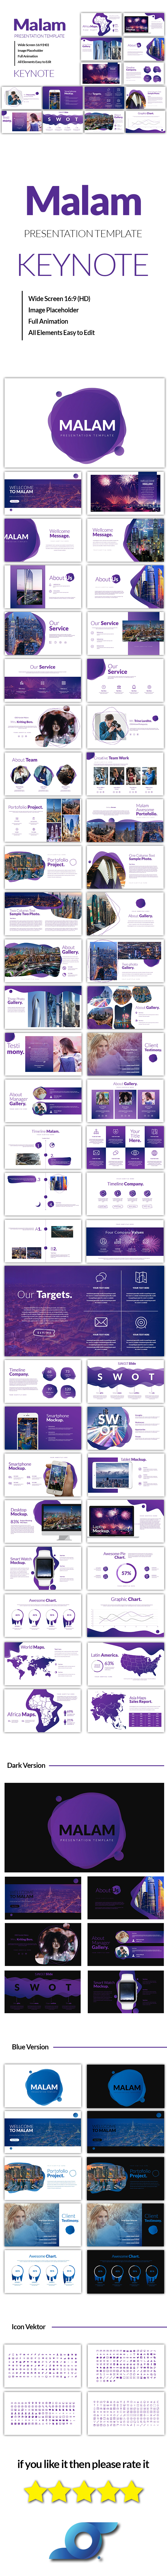 Malam Modren Keynote Template - Abstract Keynote Templates